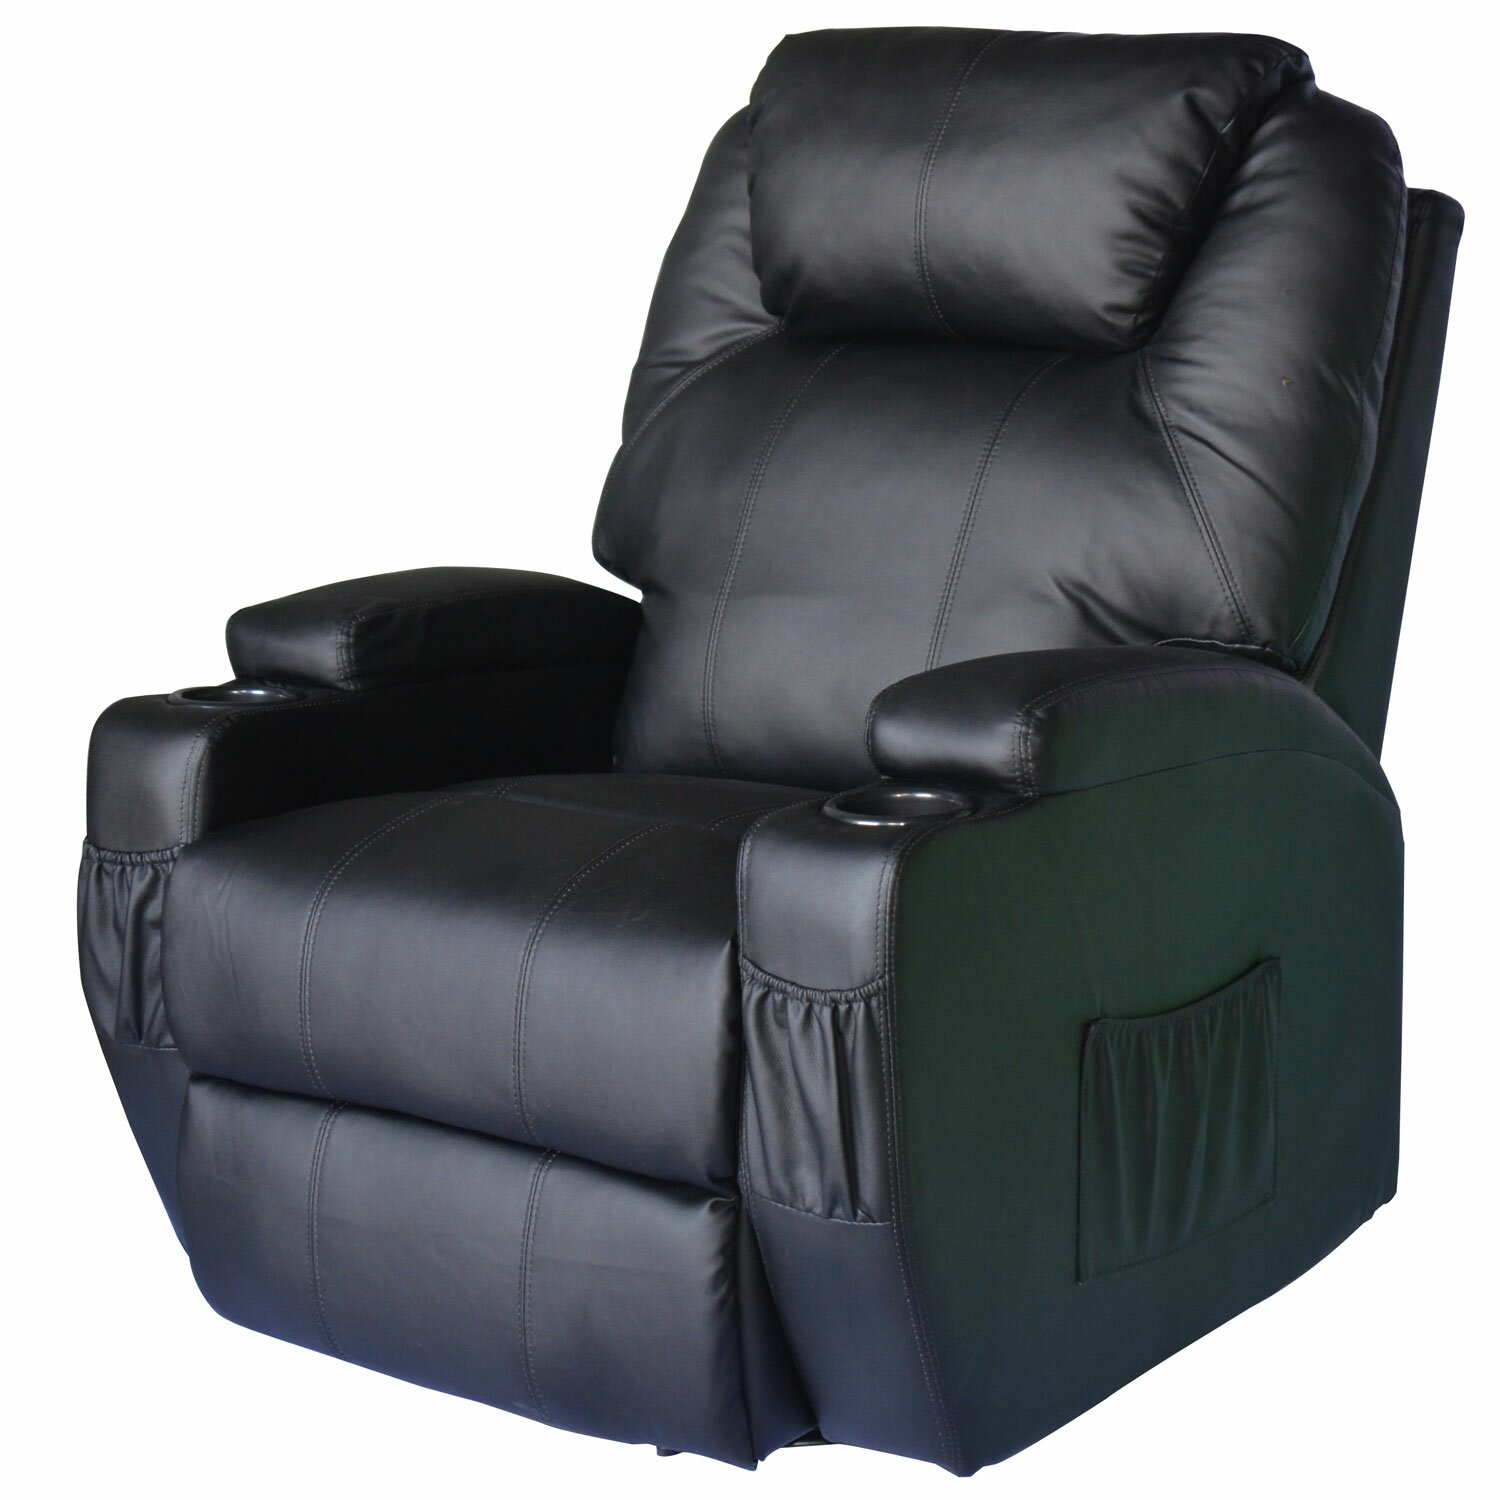 outsunny homcom deluxe heated vibrating vinyl leather. Black Bedroom Furniture Sets. Home Design Ideas